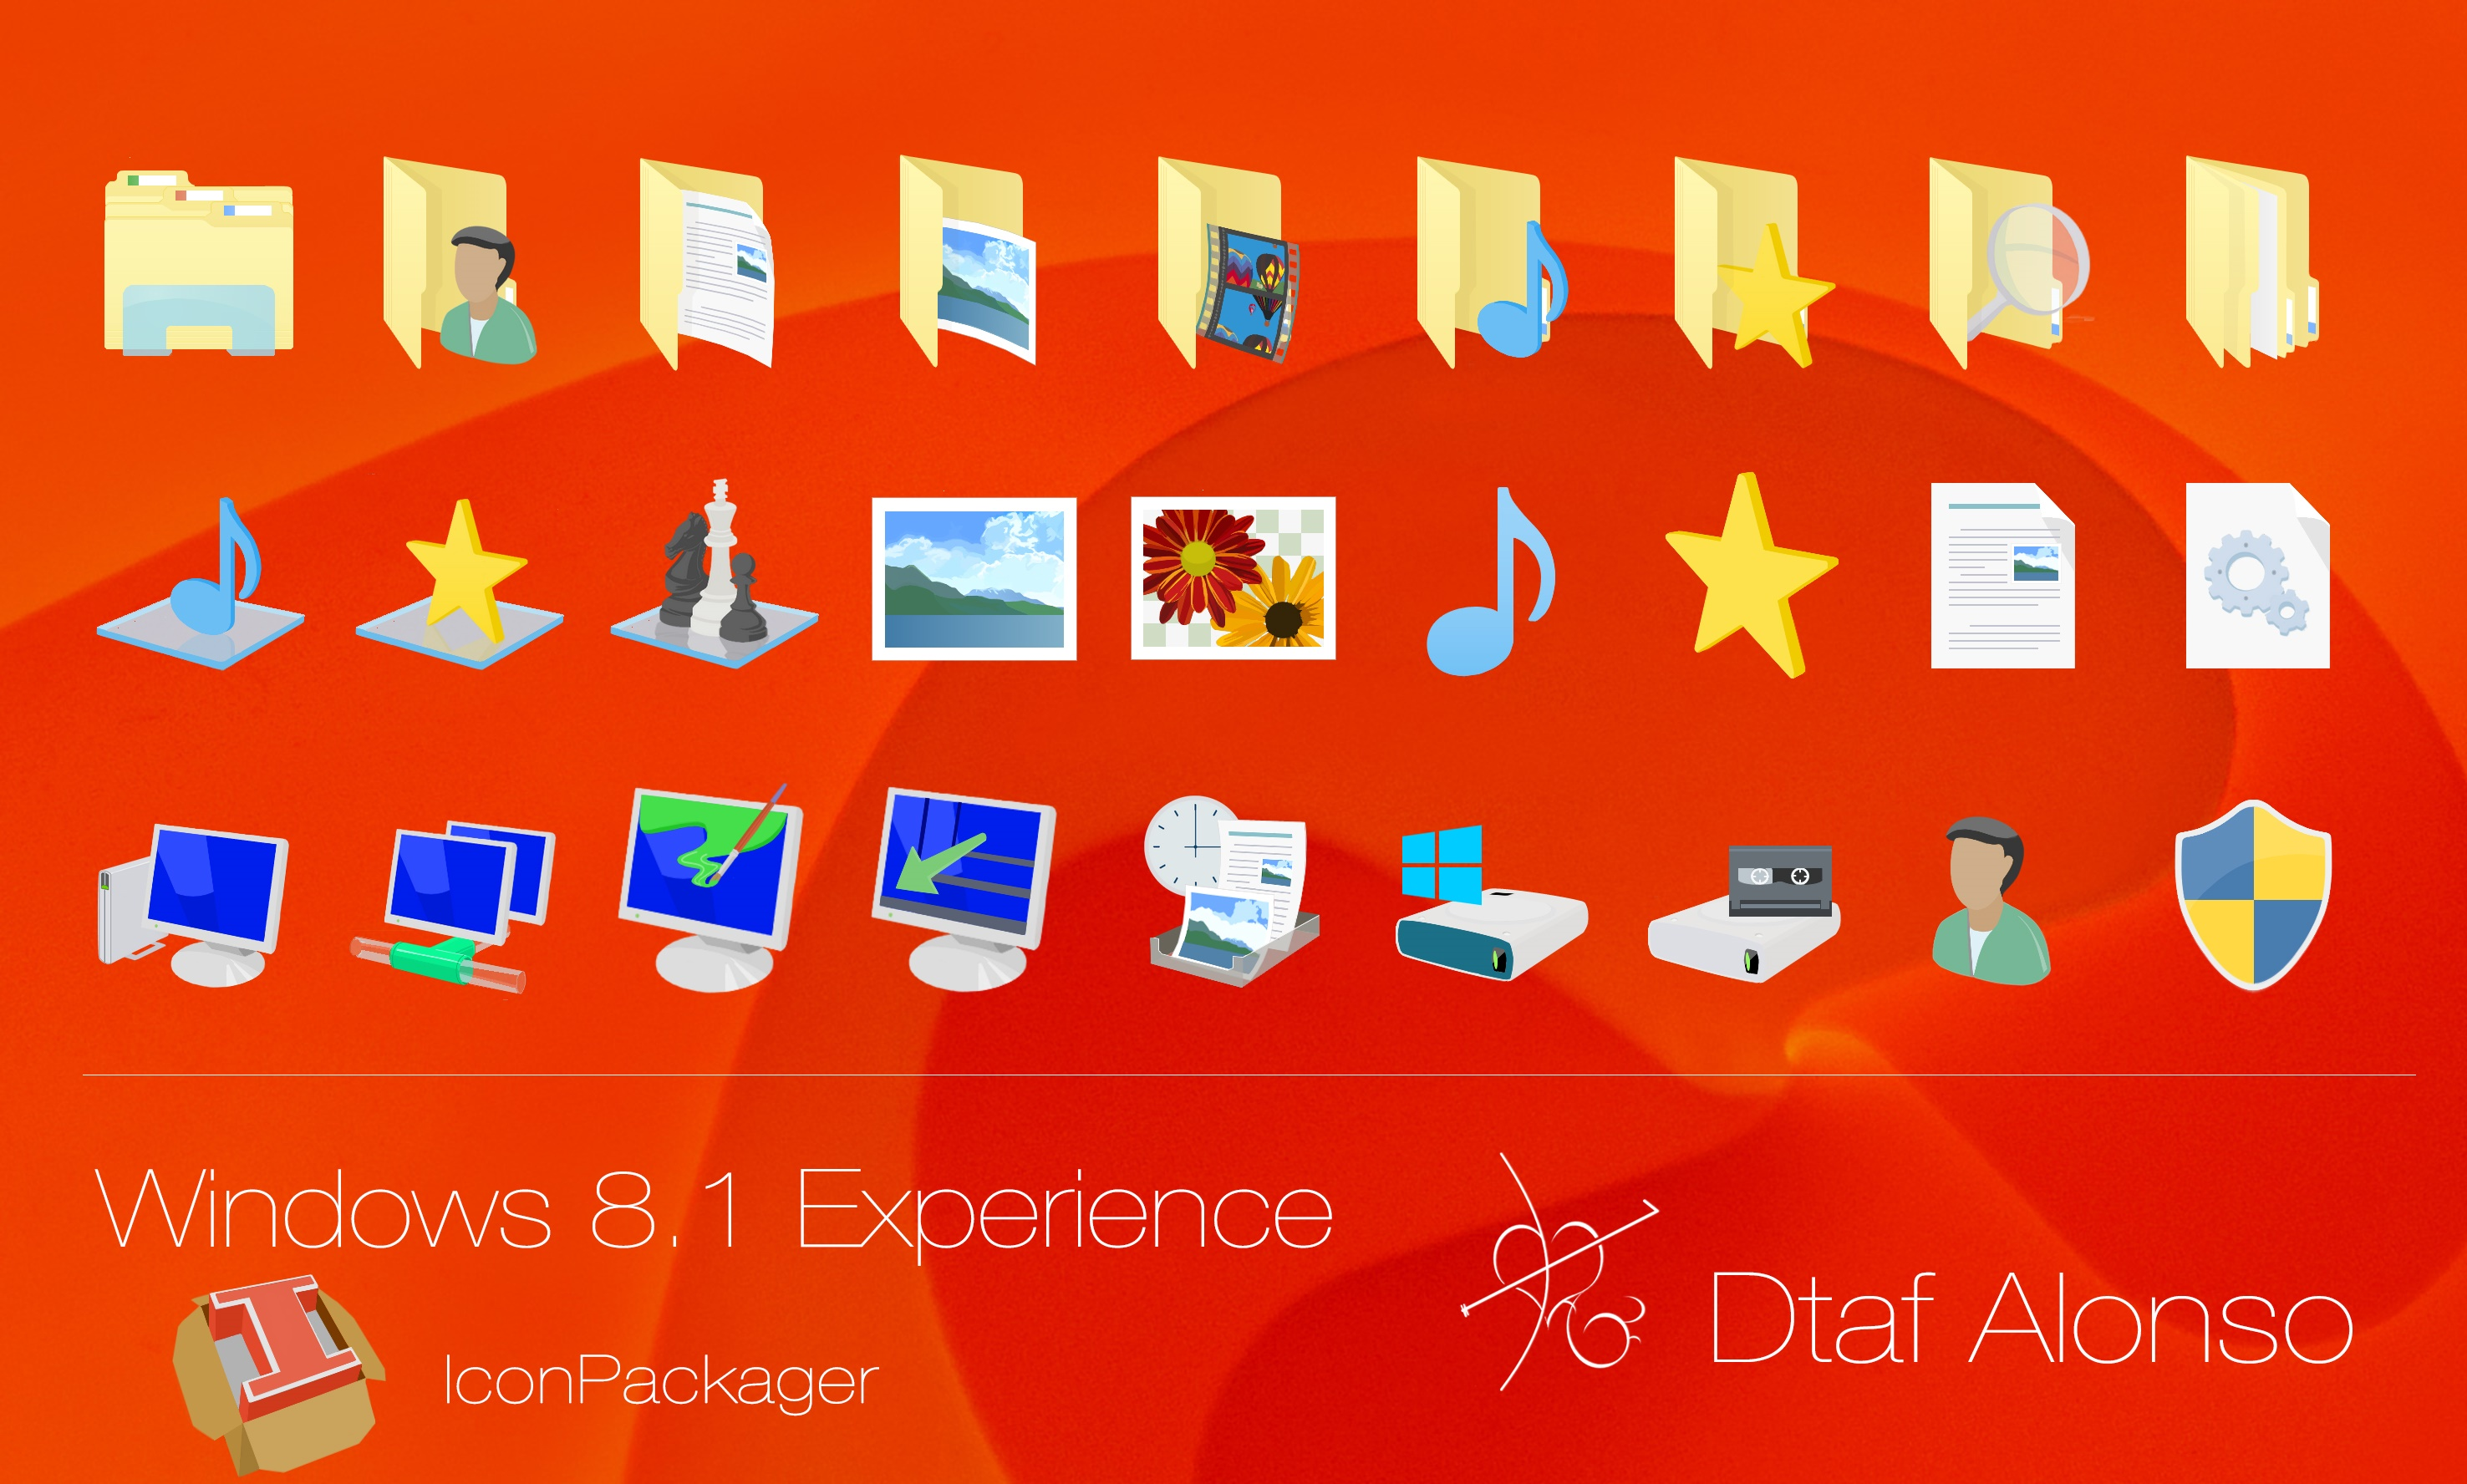 Windows 8.1 Experience by dtafalonso on DeviantArt